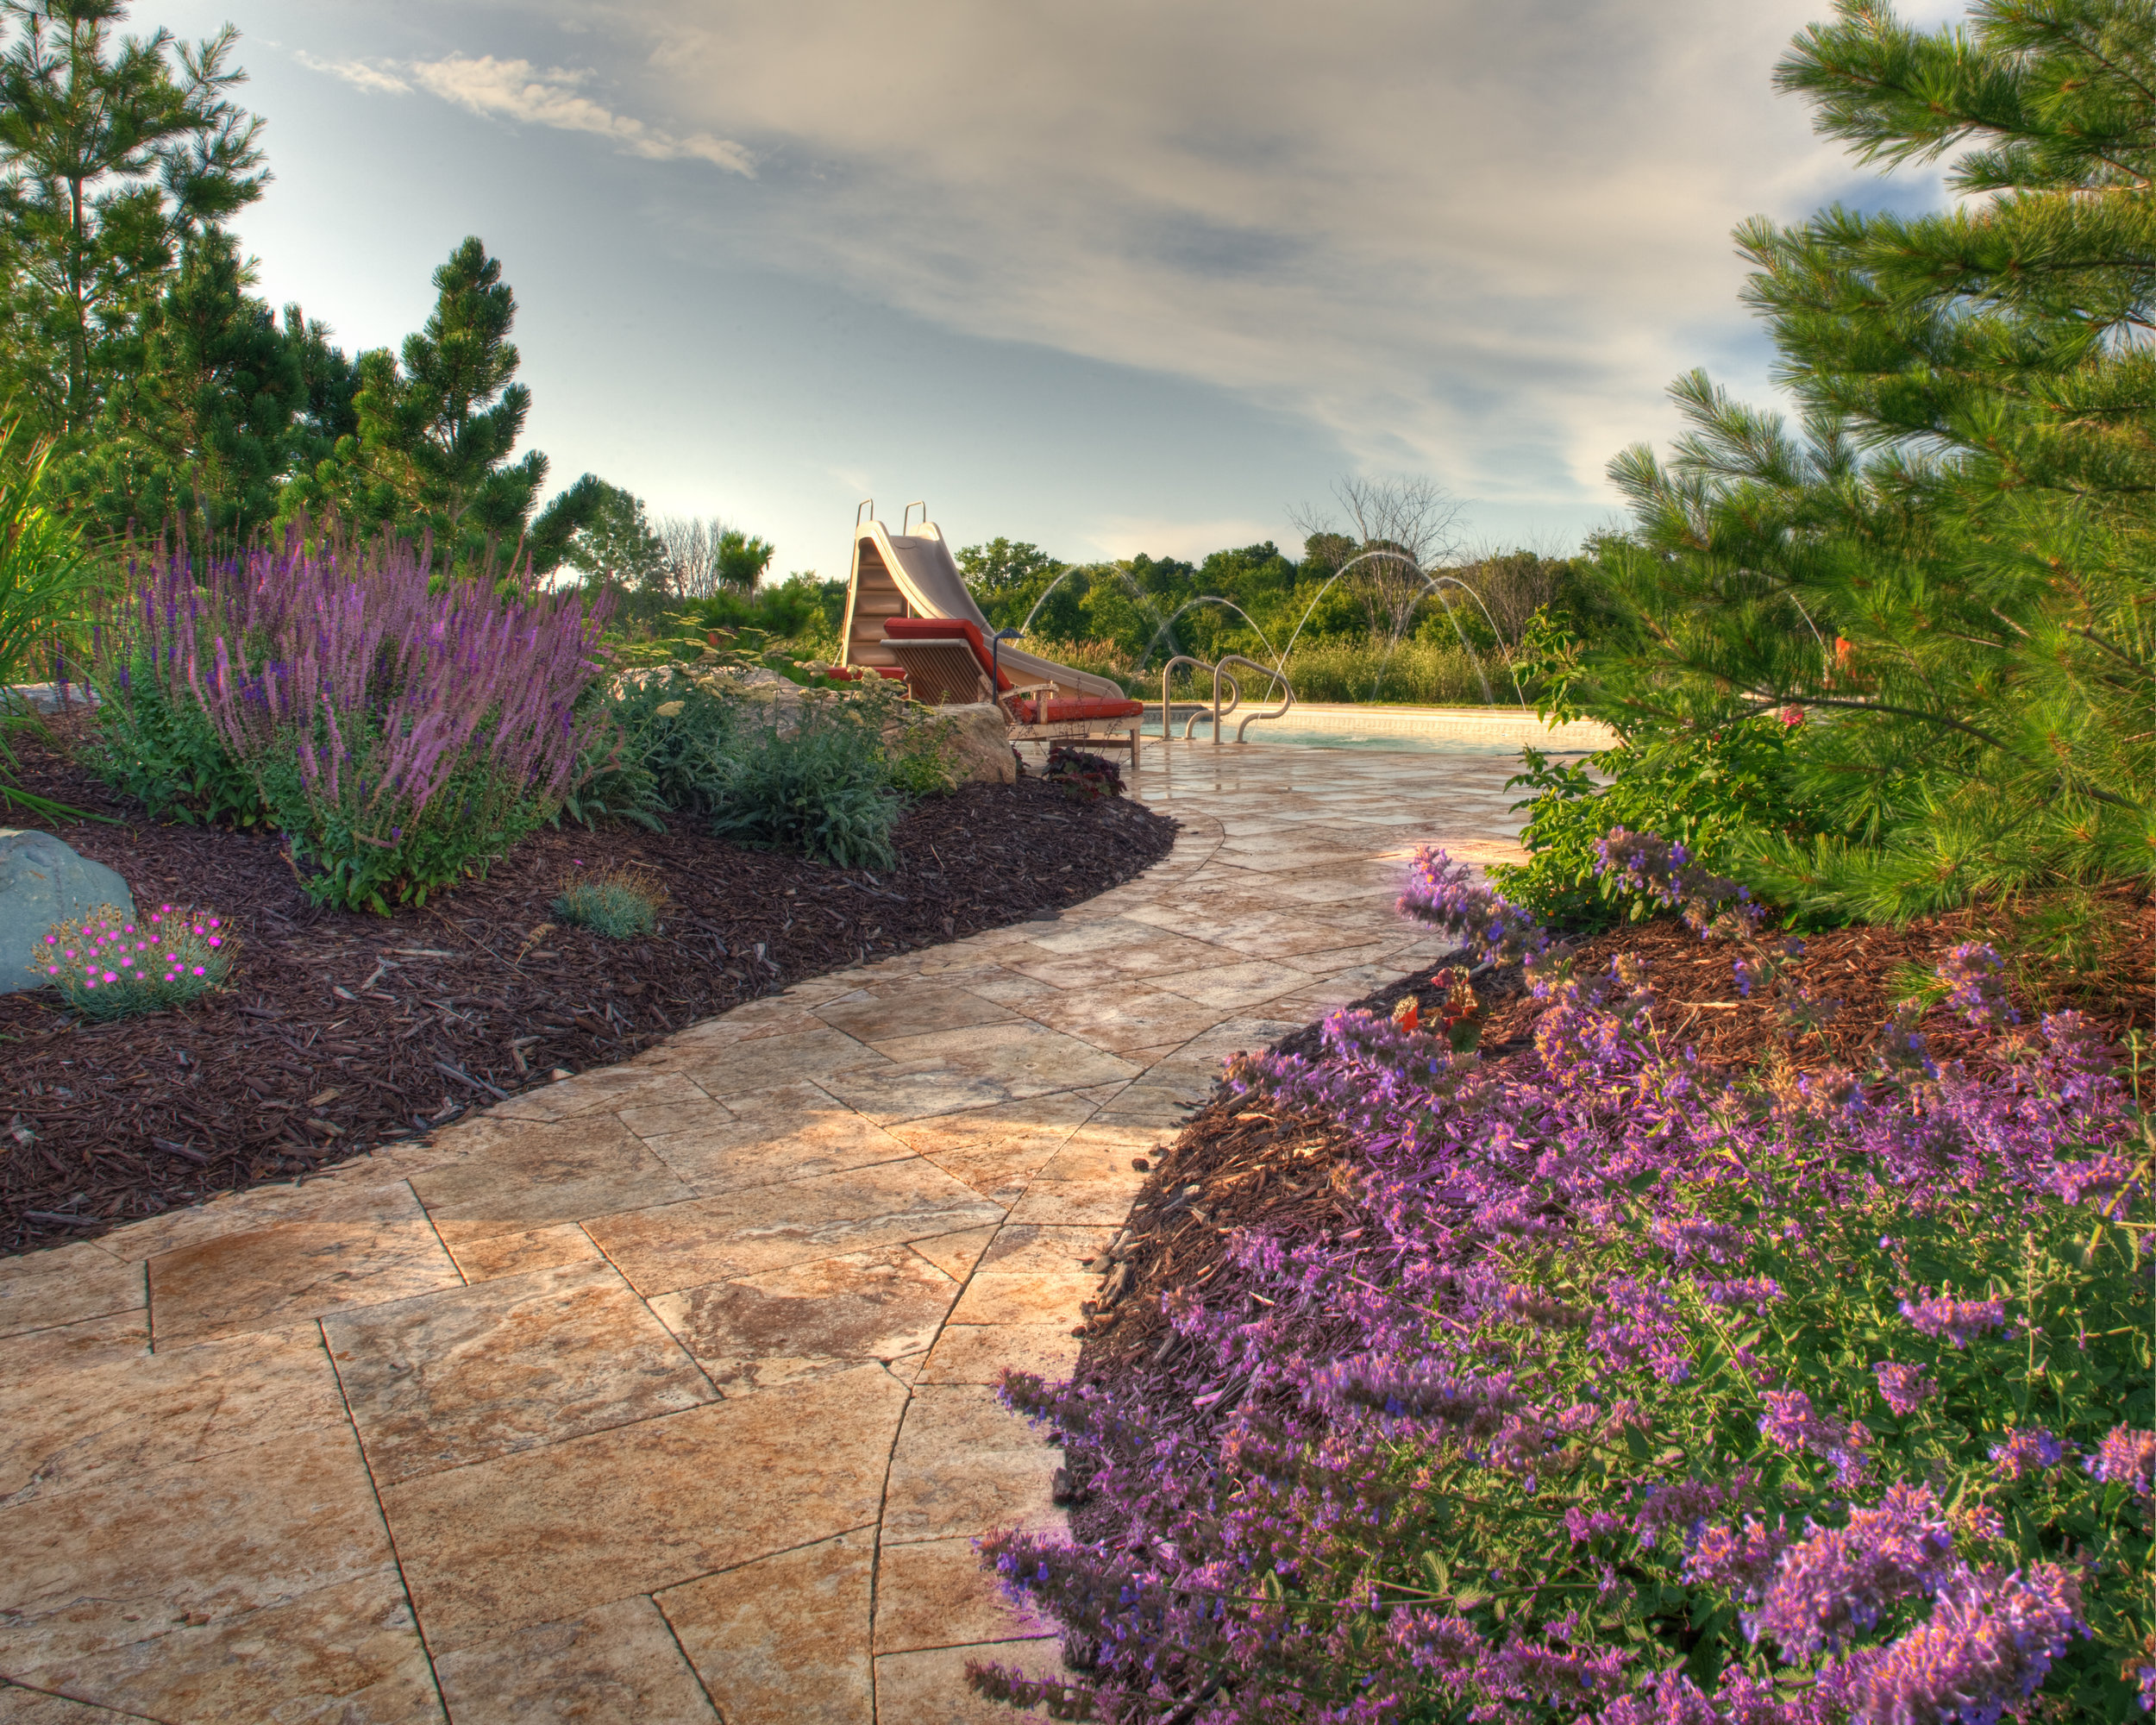 Walkway to Maple Grove area pool, surrounded by fresh smelling pines and salvia plants along the natural stone path.